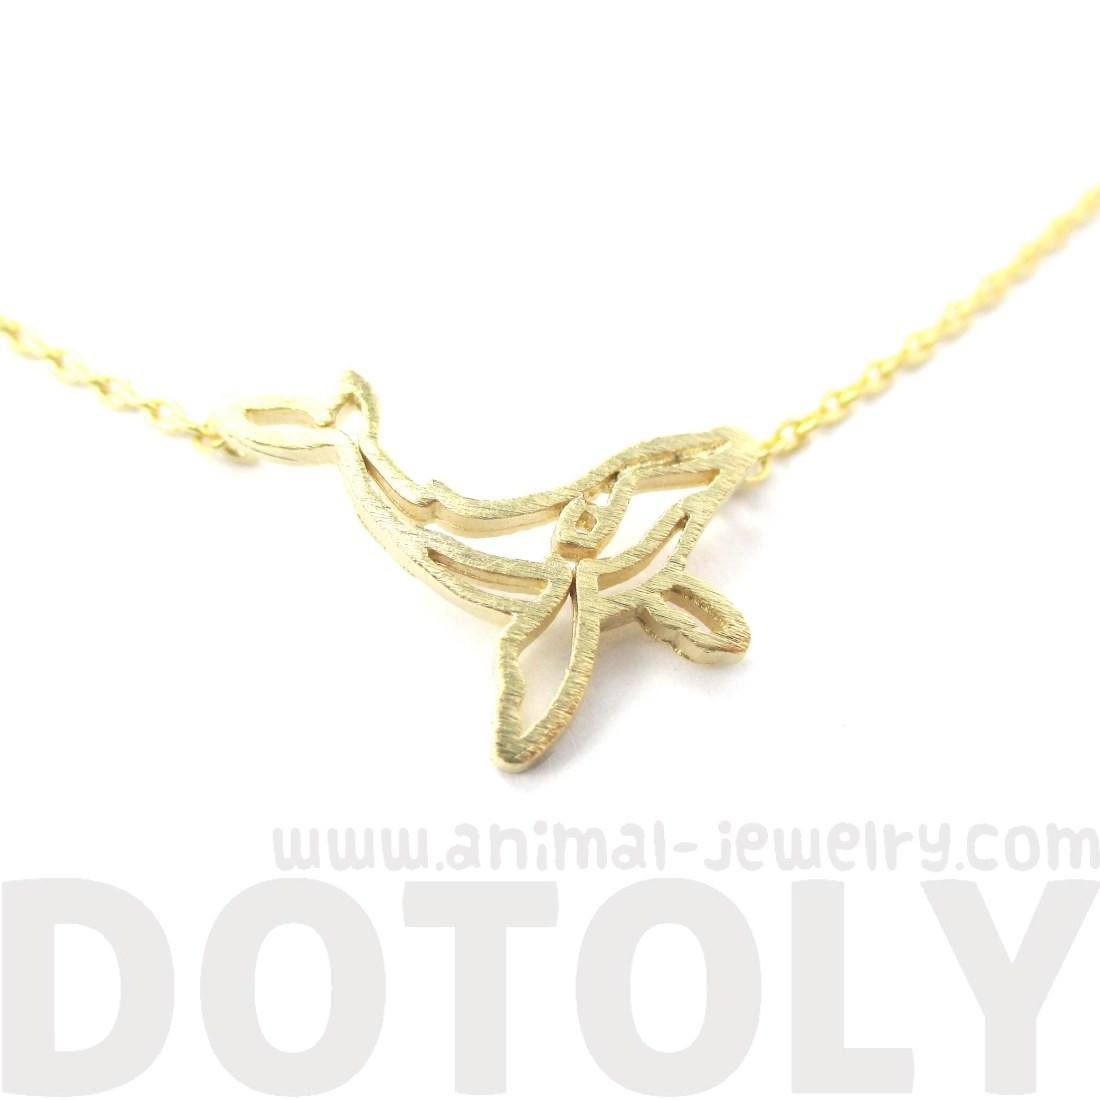 Realistic Humpback Whale Silhouette Animal Charm Necklace in Gold